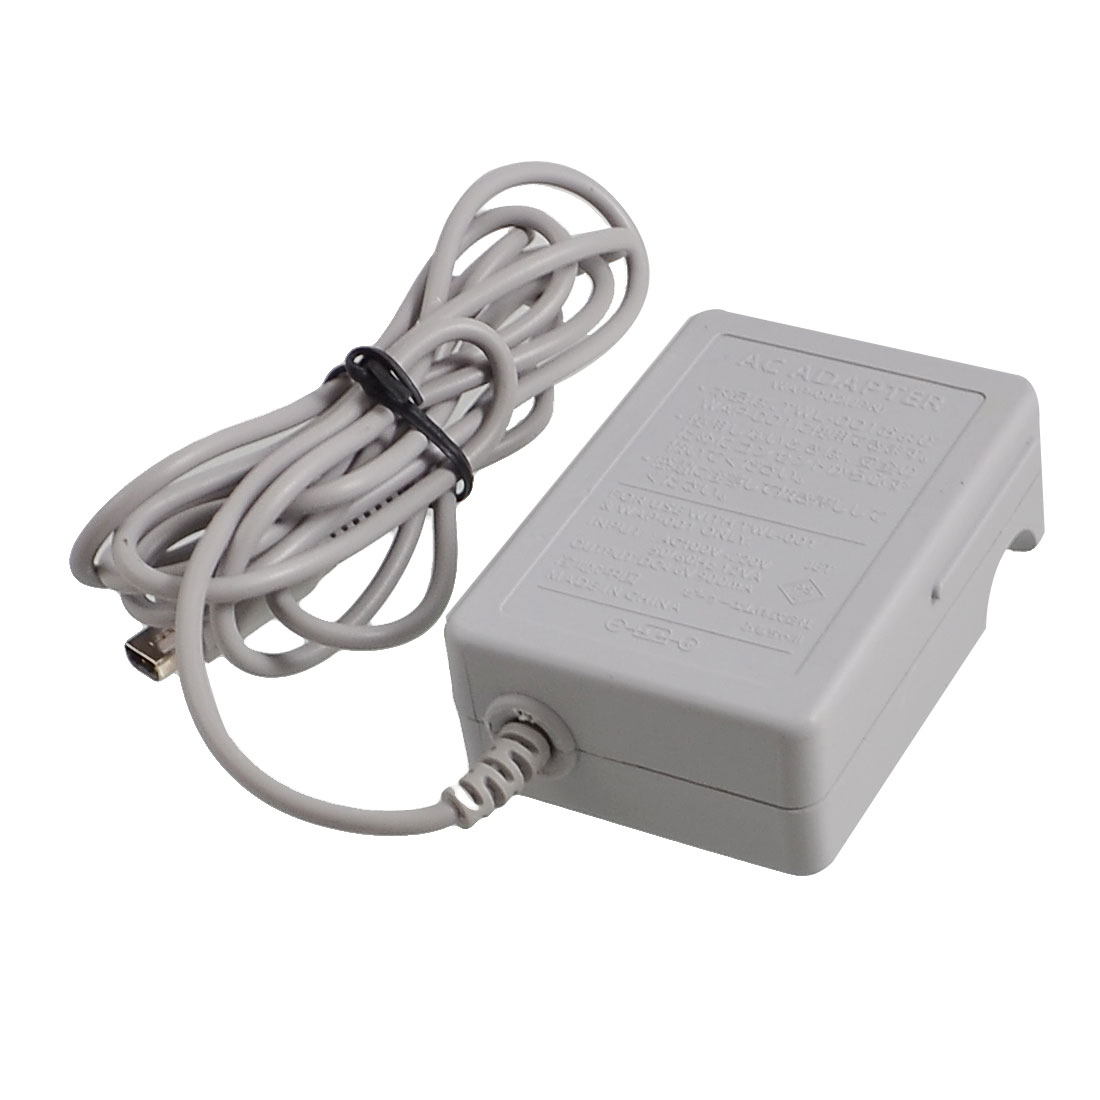 US Plug AC 100-220V Gray Plastic Power Charger Adapter for Nintendo 3DS